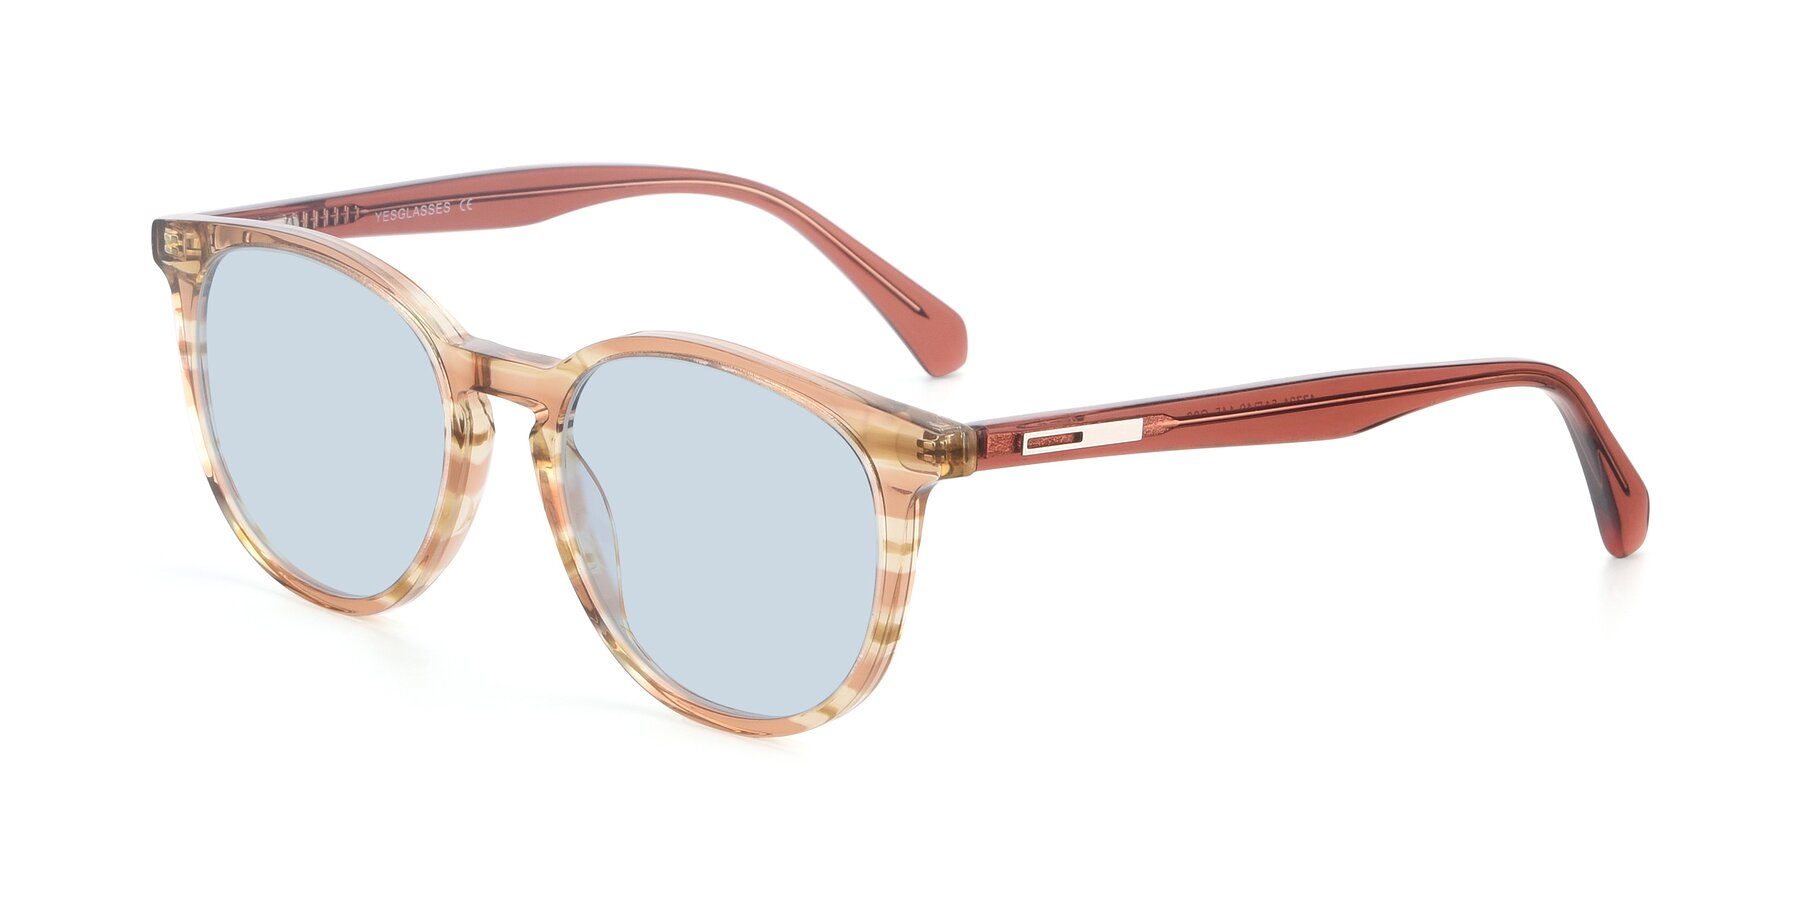 Angle of 17721 in Stripe Caramel with Light Blue Tinted Lenses